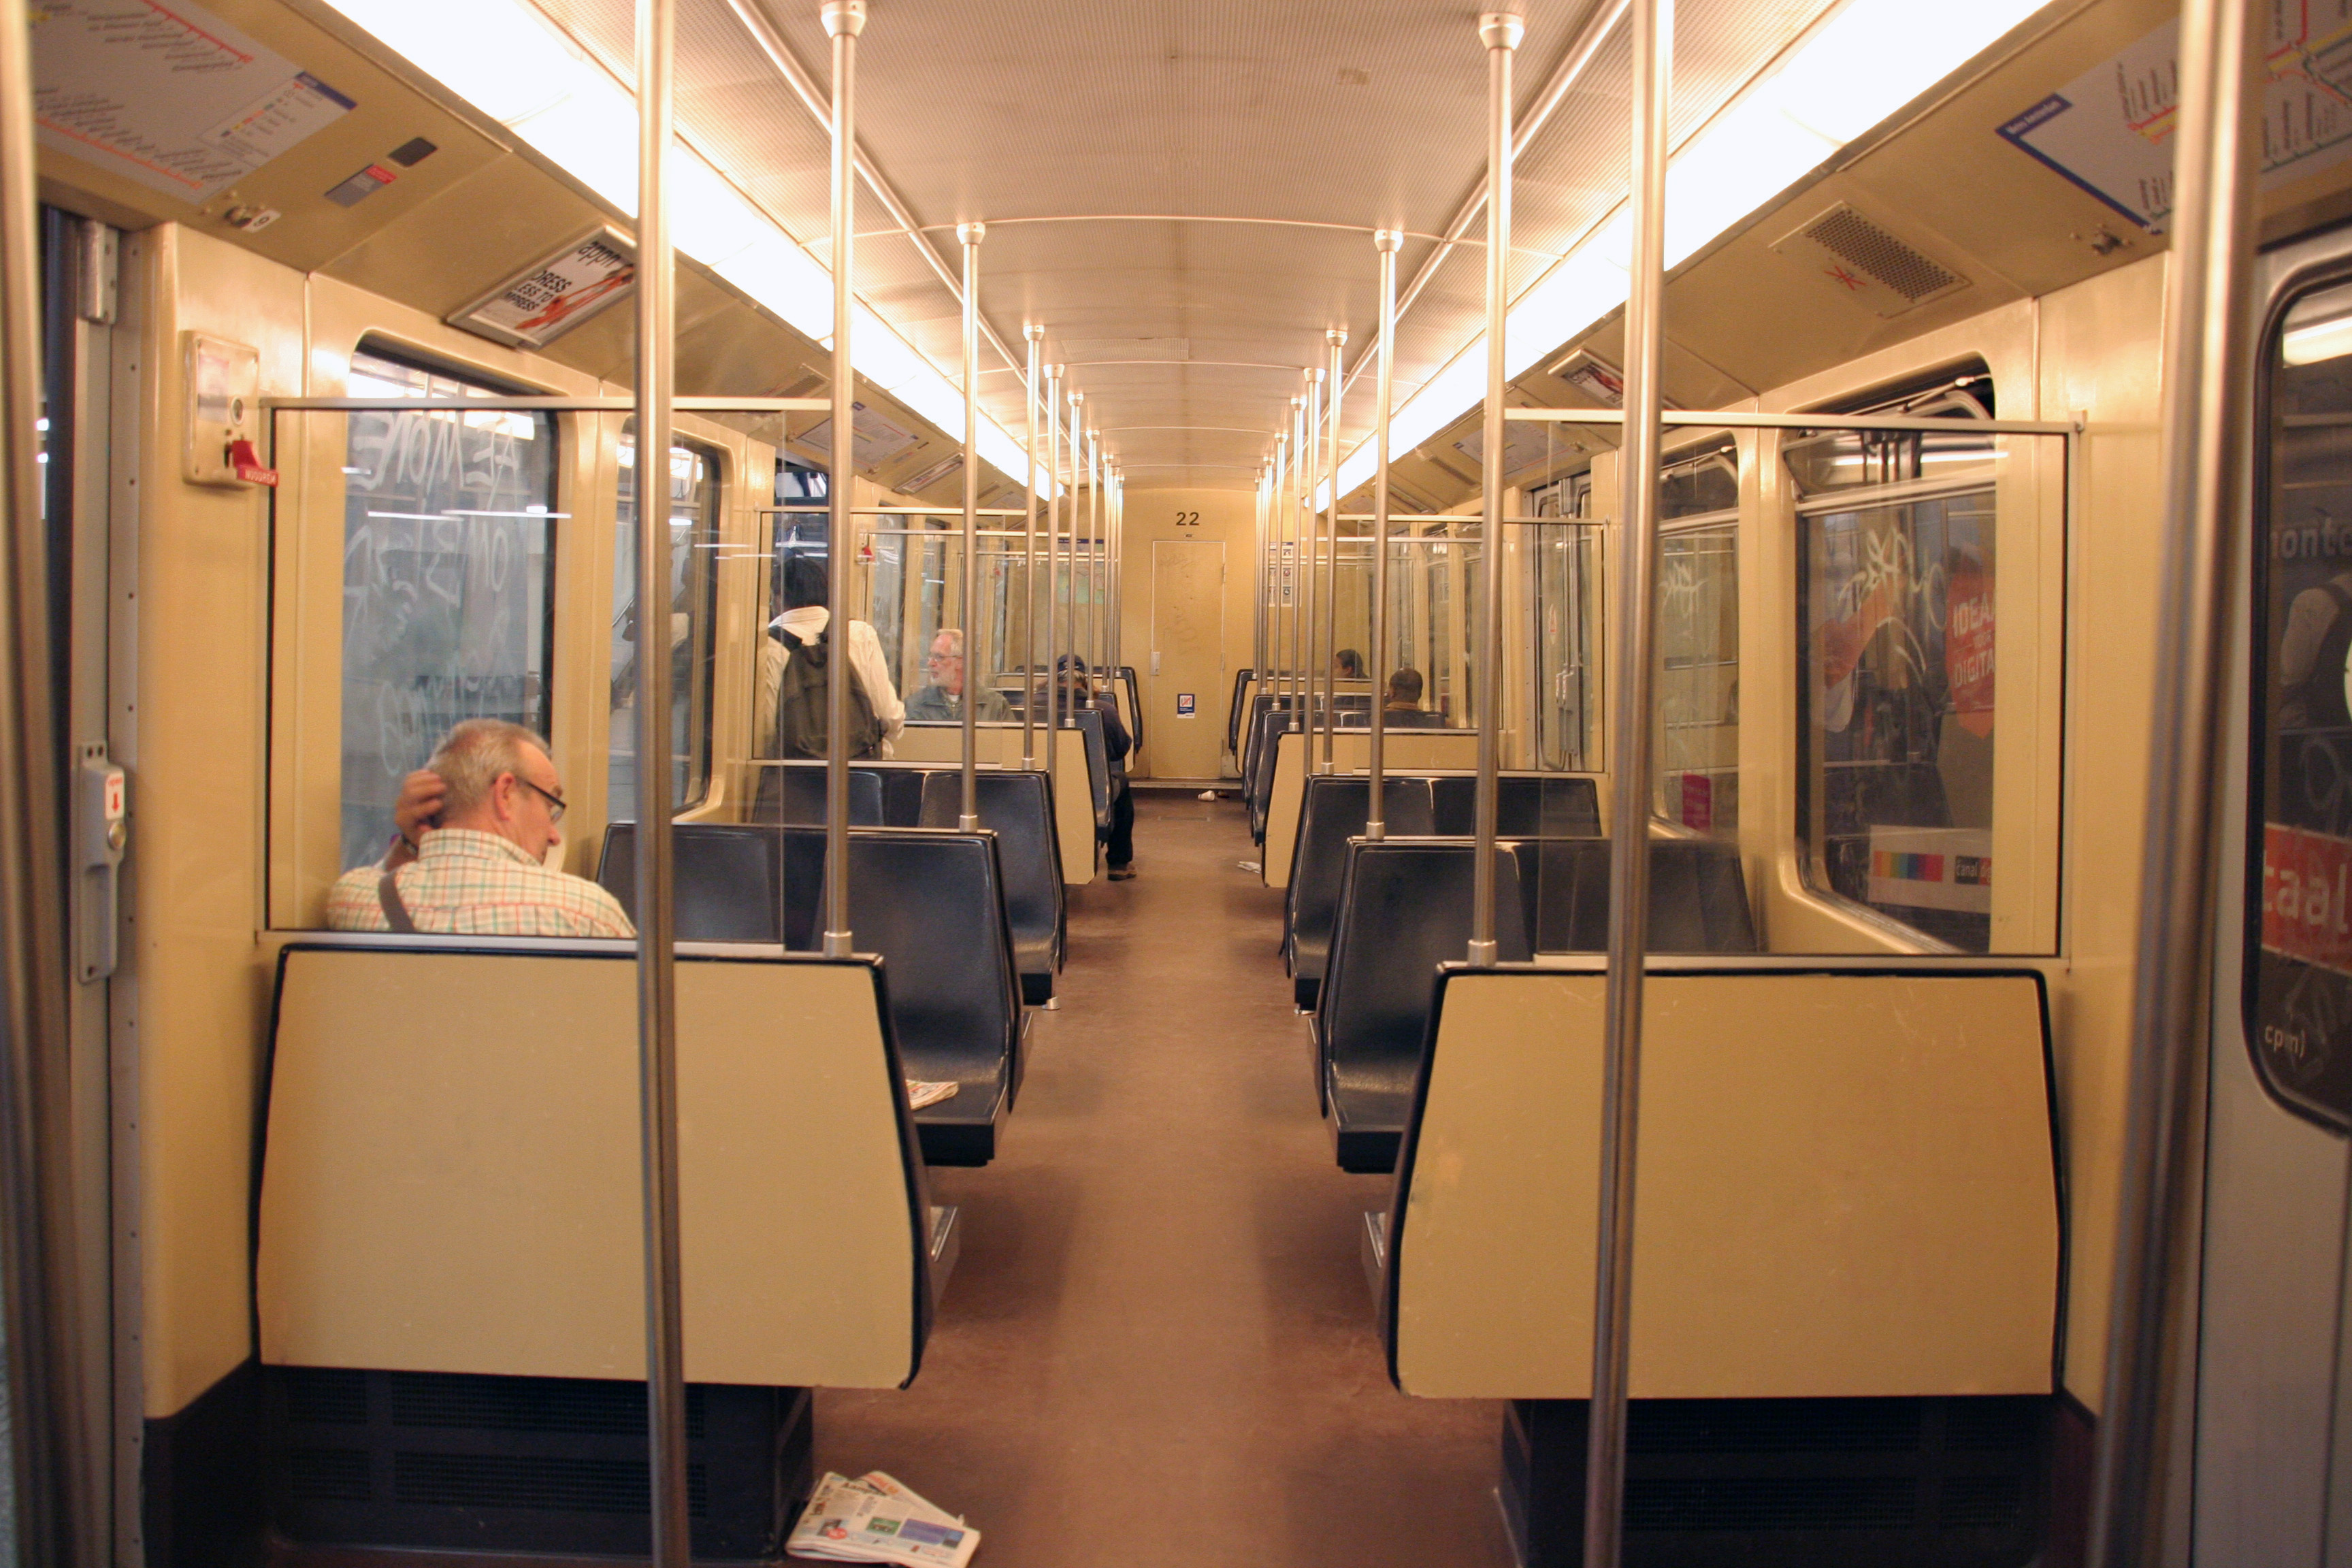 File:Interieur LHB Metro Amsterdam.jpg - Wikimedia Commons